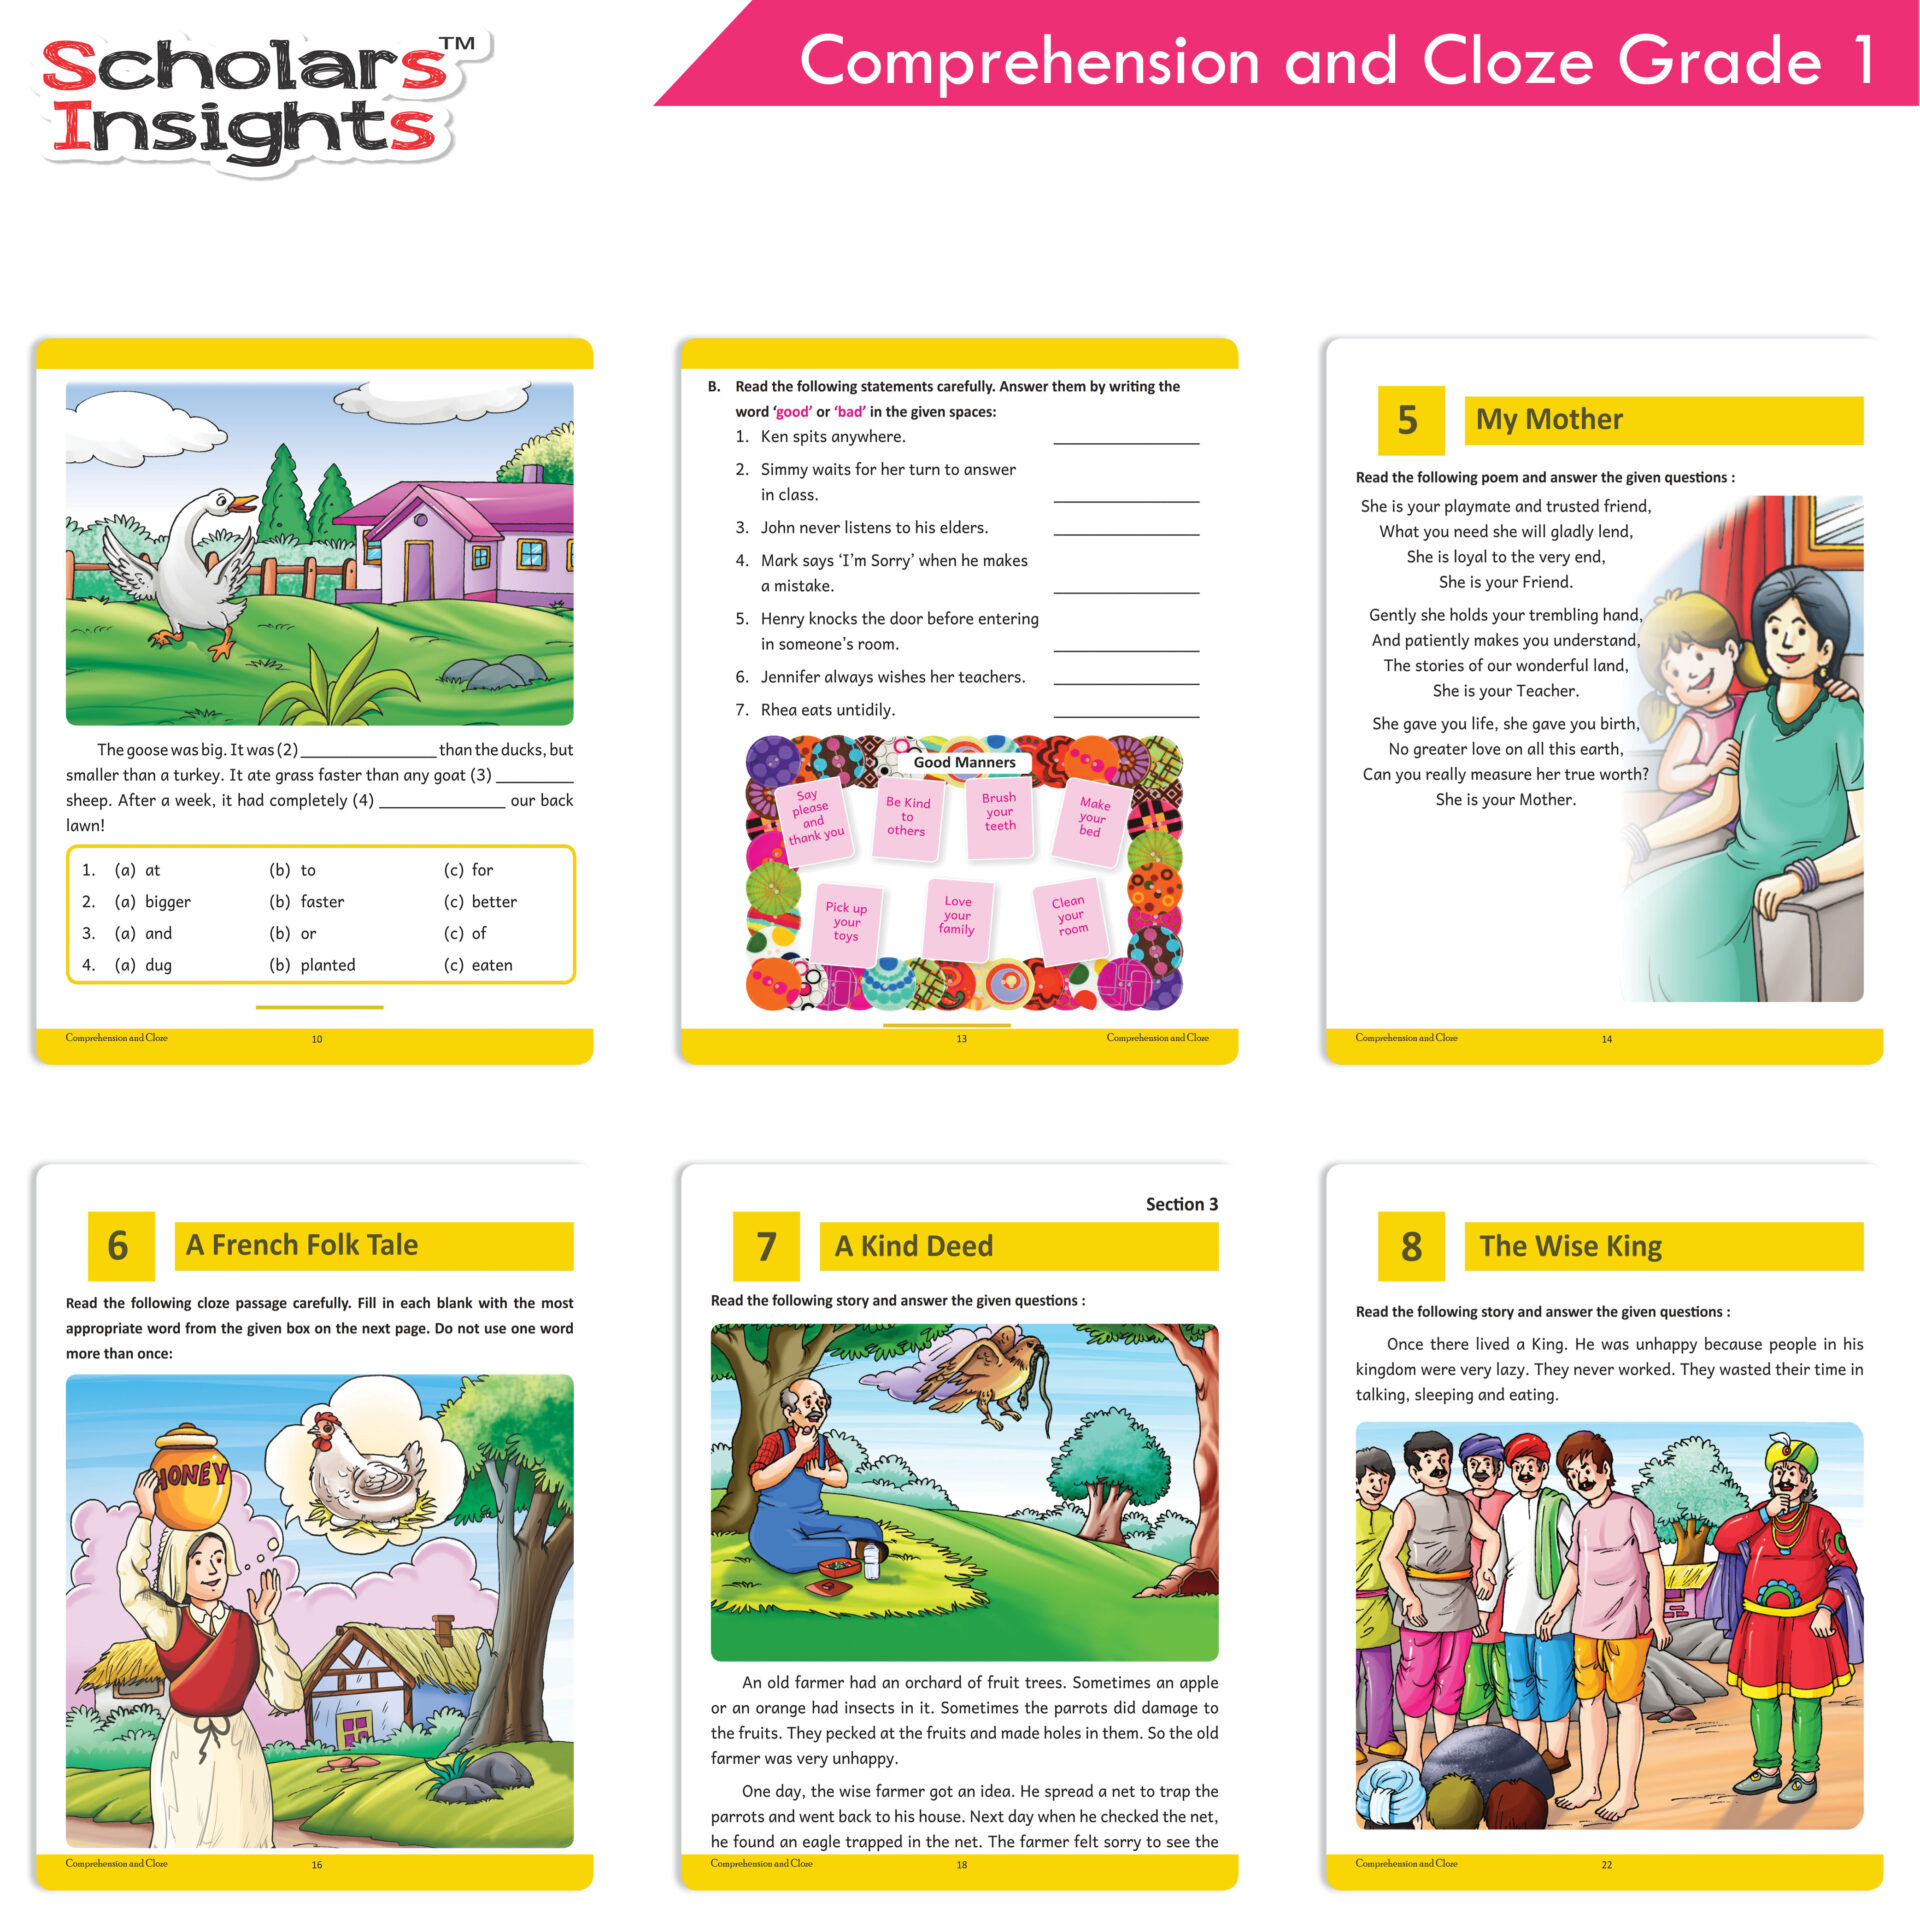 Scholars Insights Comprehension and Cloze Grade 1 4 1